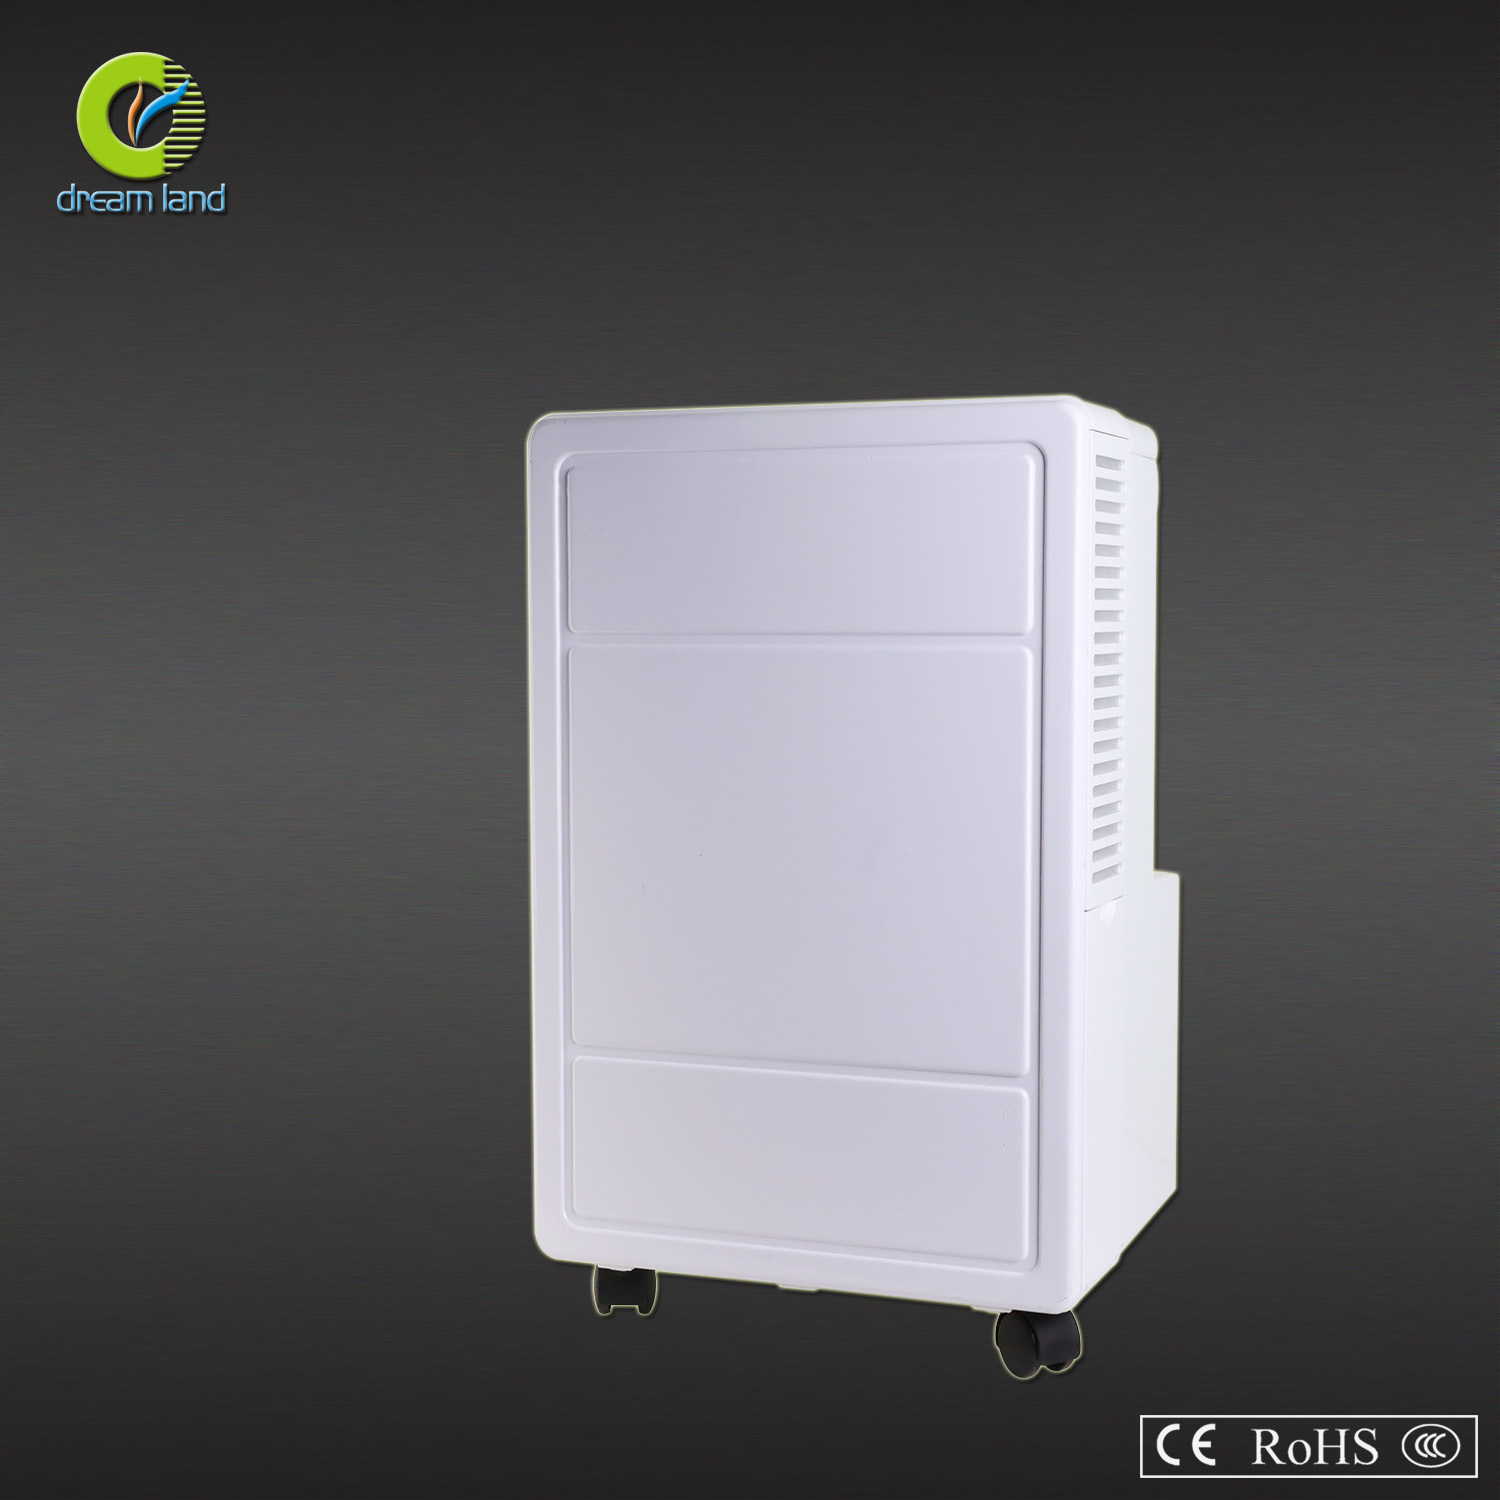 Automatic Defrosting Air Dehumidifier (CLDD-12E)